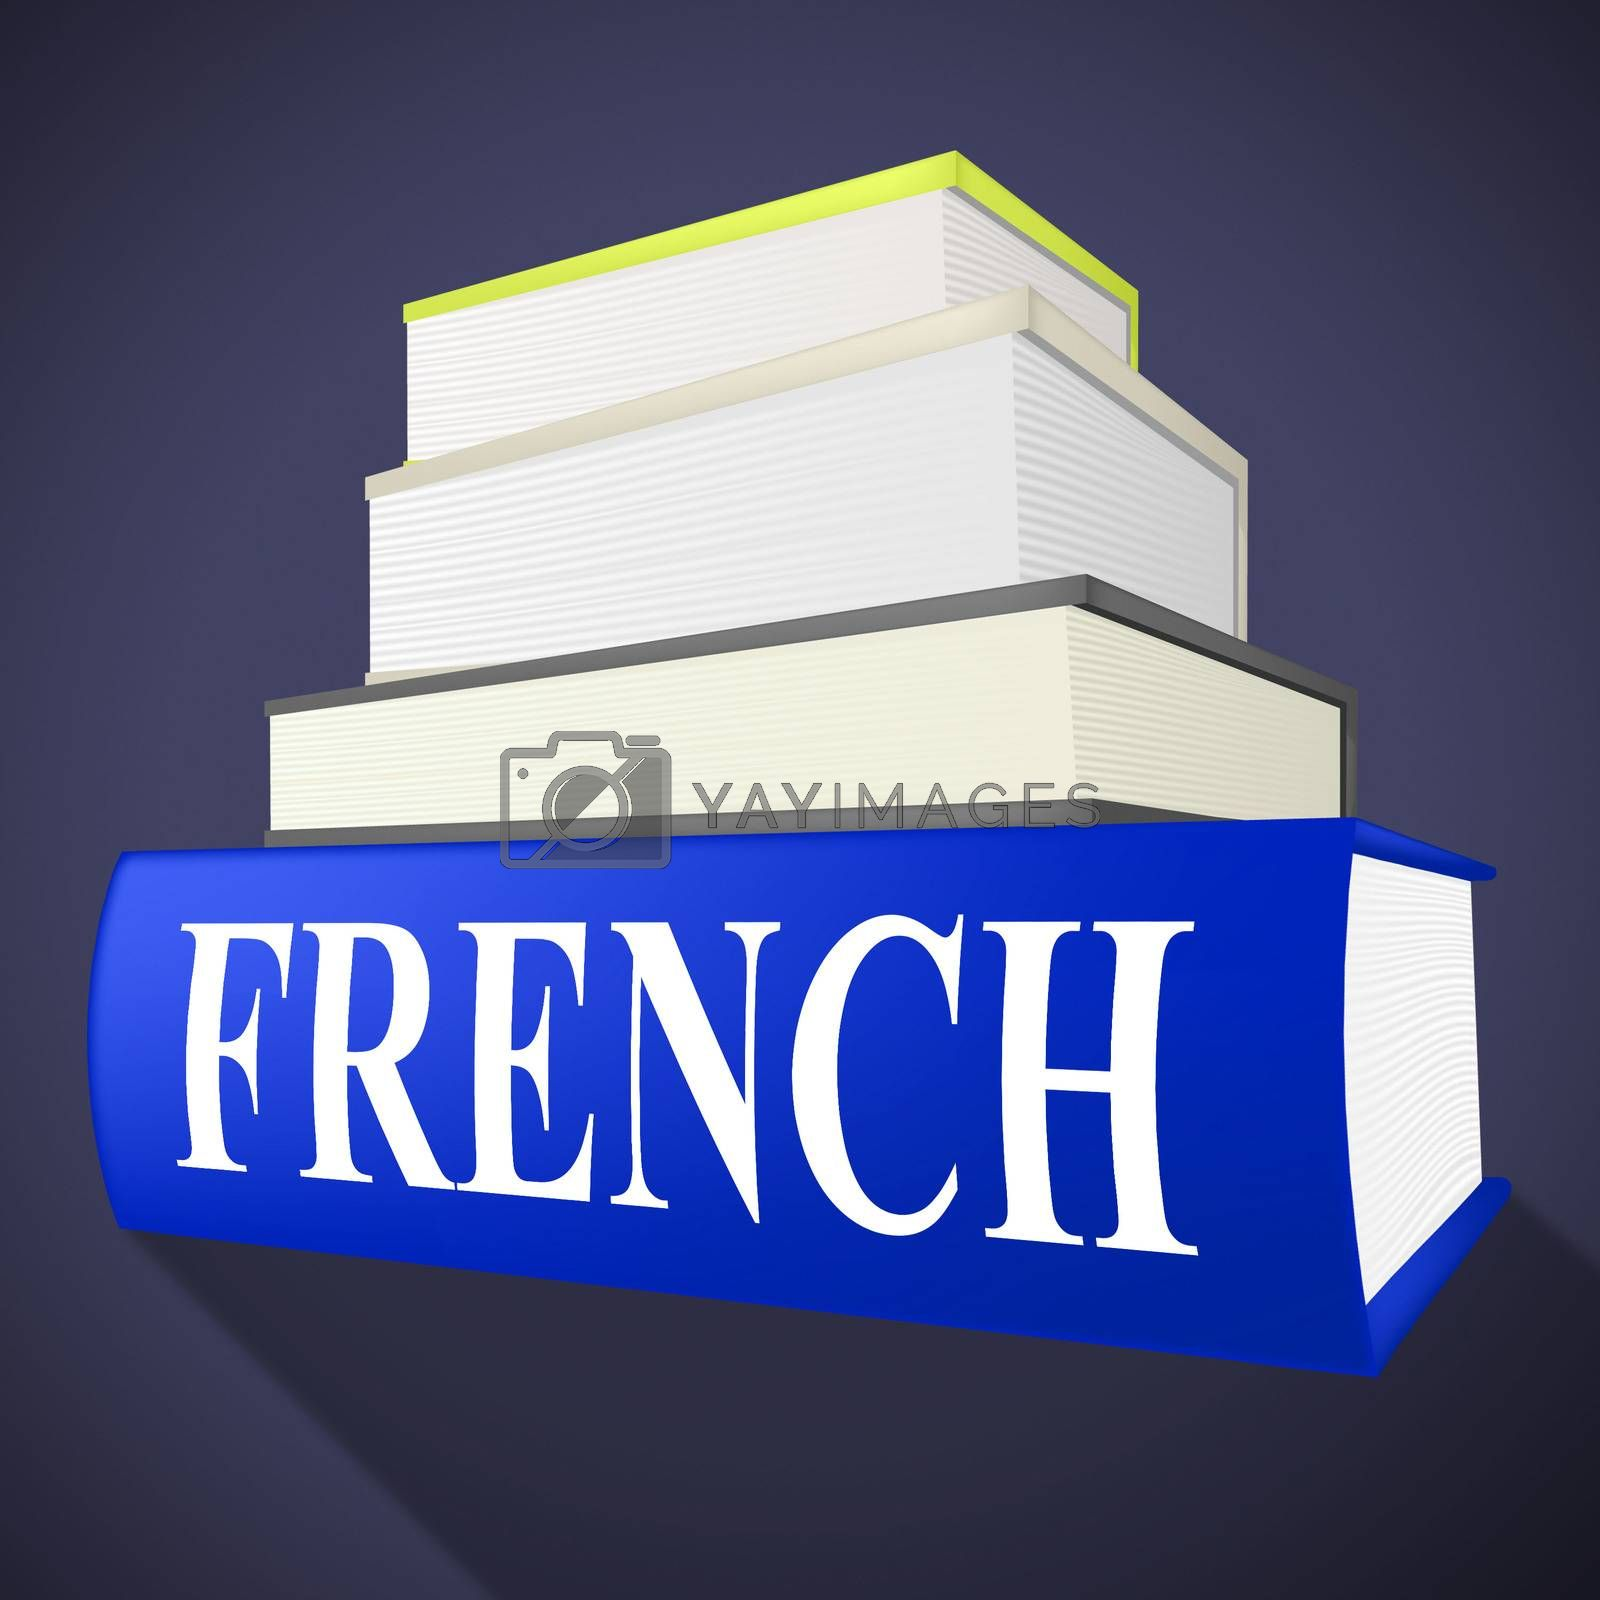 French Book Indicates Translate To English And Euro by stuartmiles